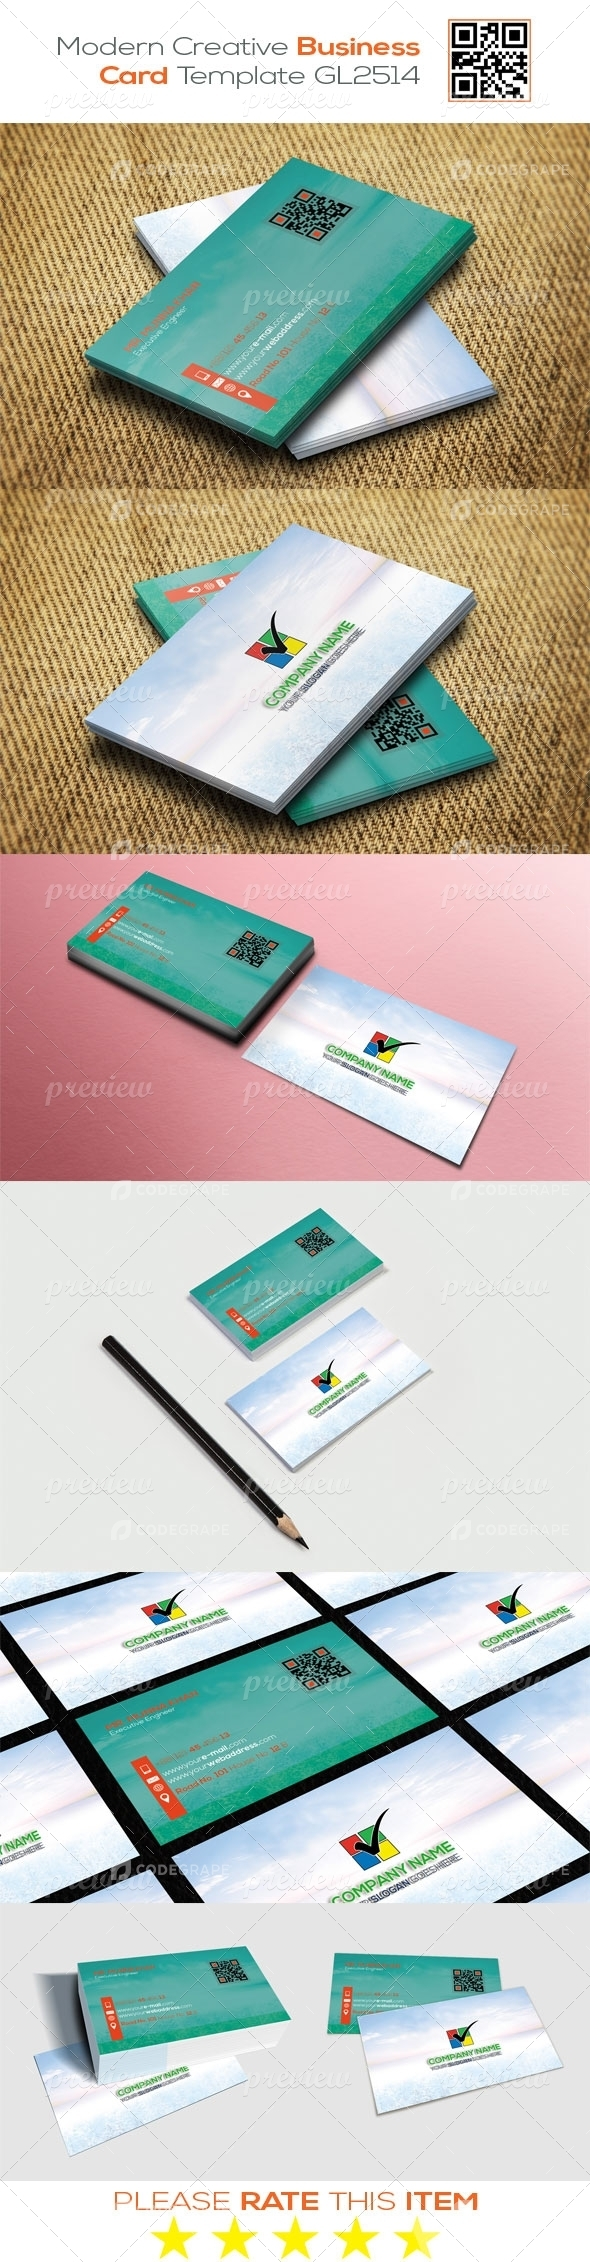 Modern Creative Business Card Template GL2514